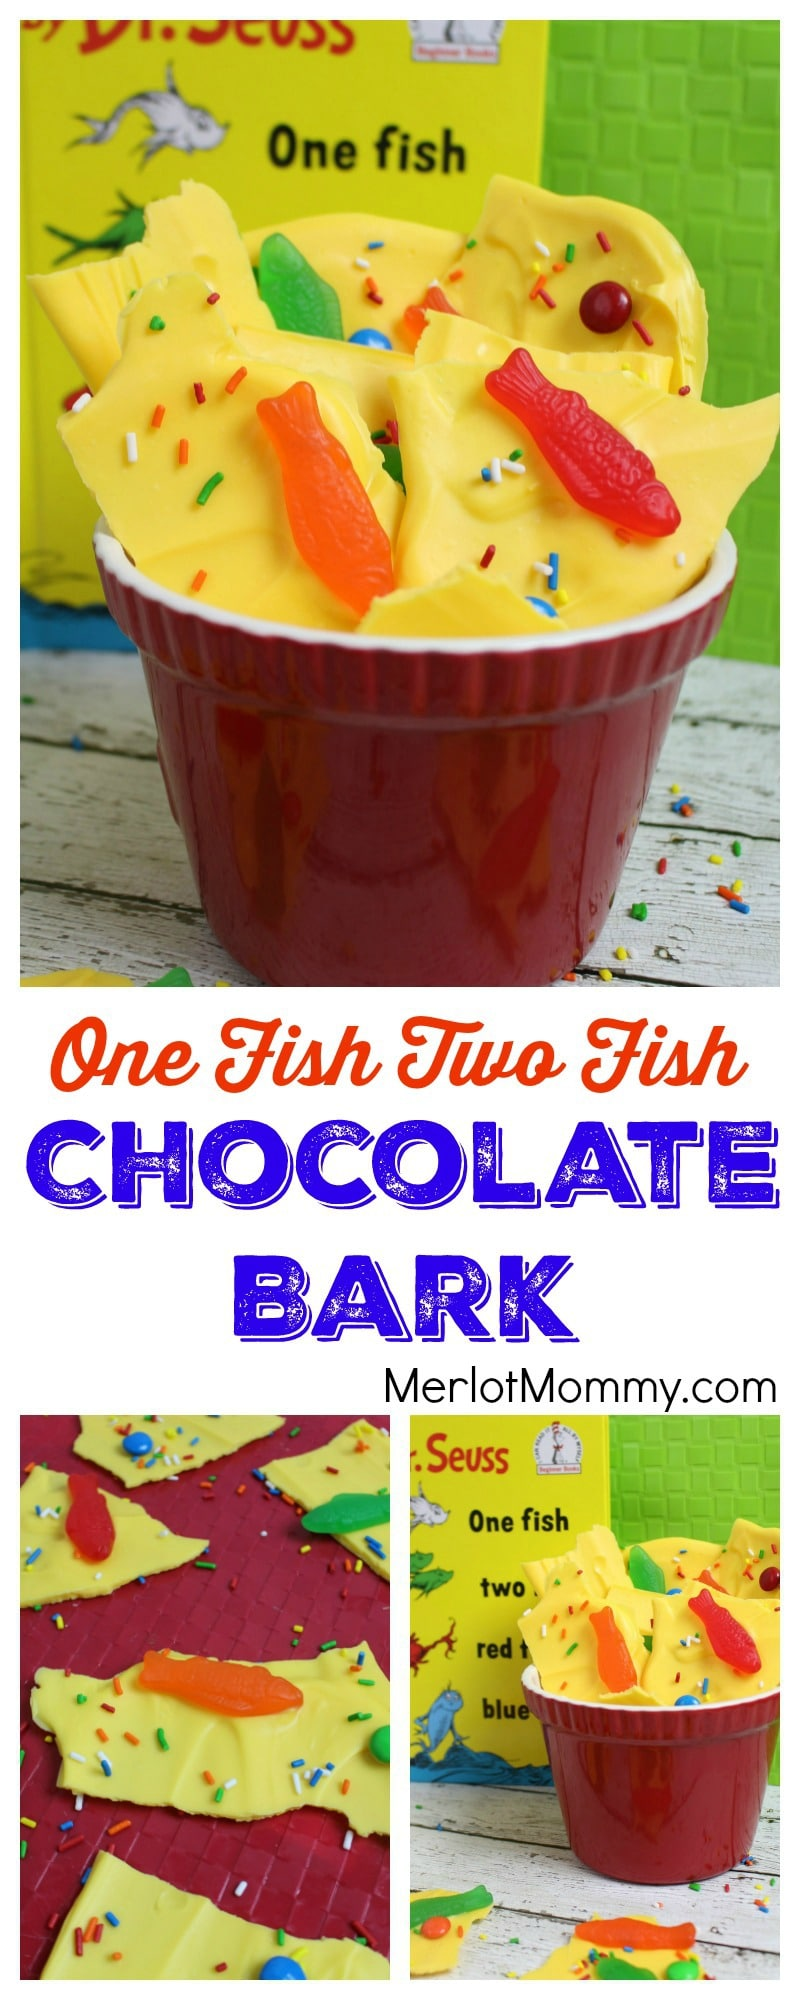 One Fish Two Fish Chocolate Bark Dr. Seuss-Inspired Recipe | Whisky ...